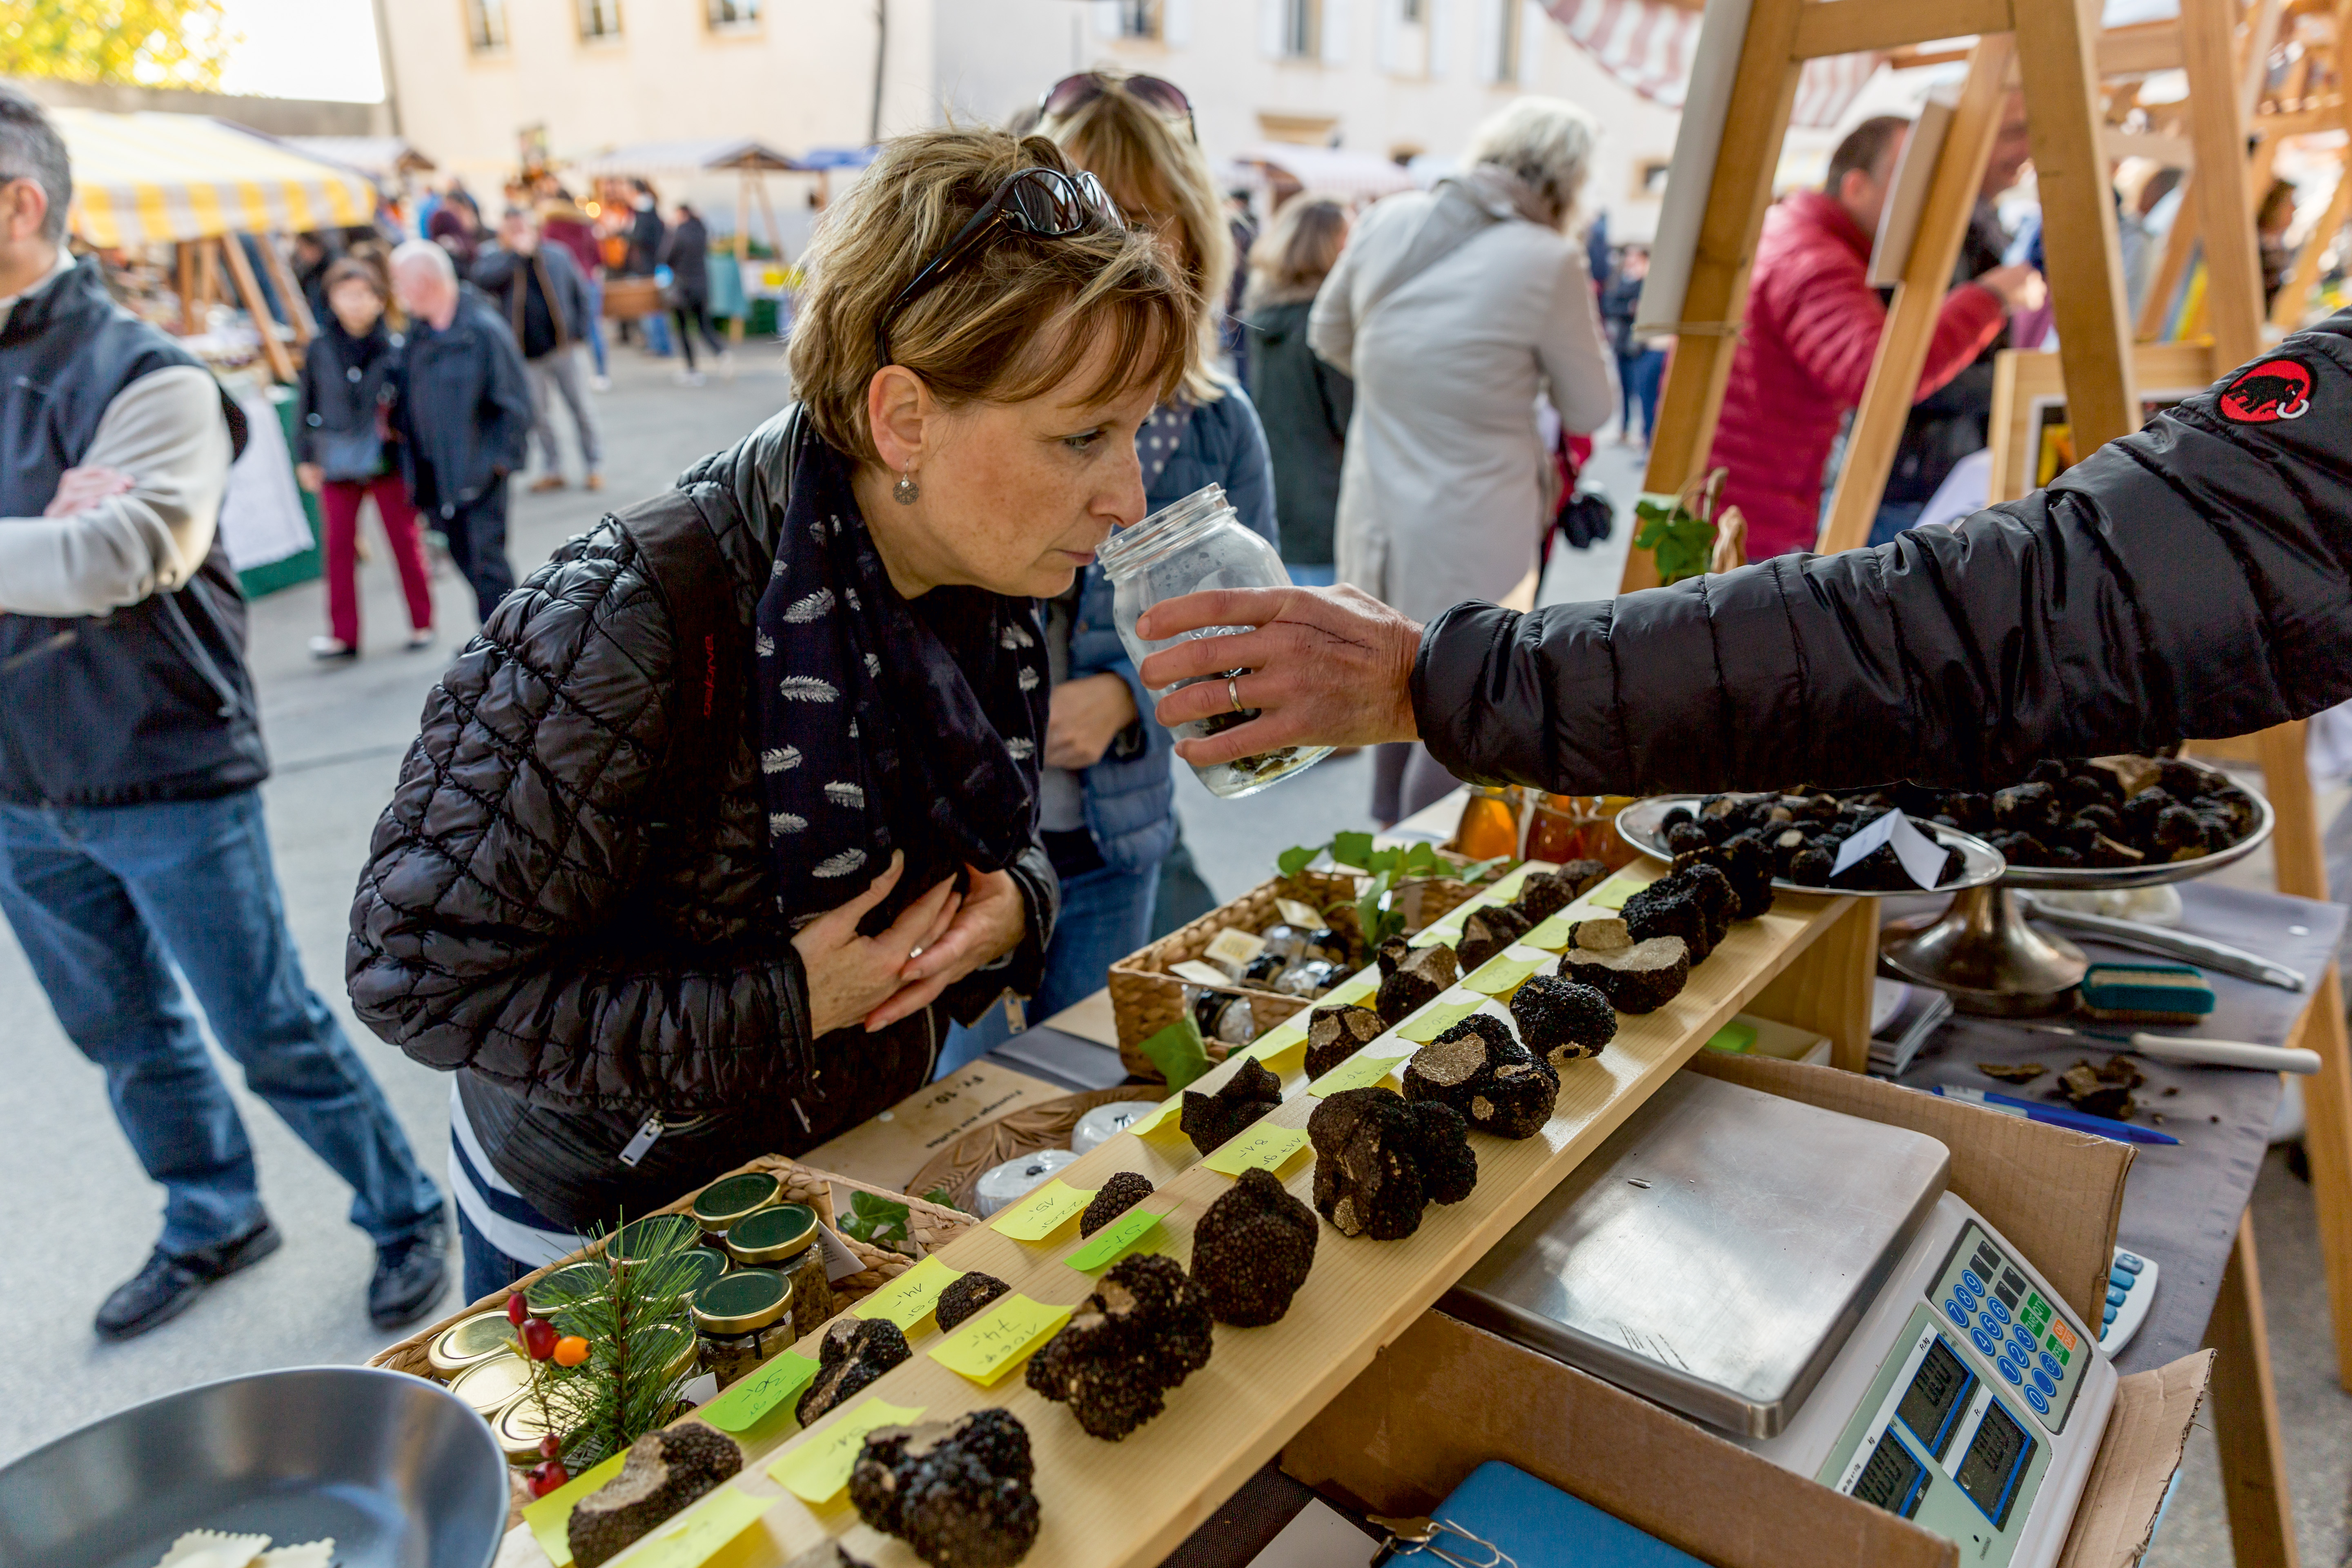 WHY FOOD TOURS ARE THE BEST WAY TO GO AROUND A NEW CITY